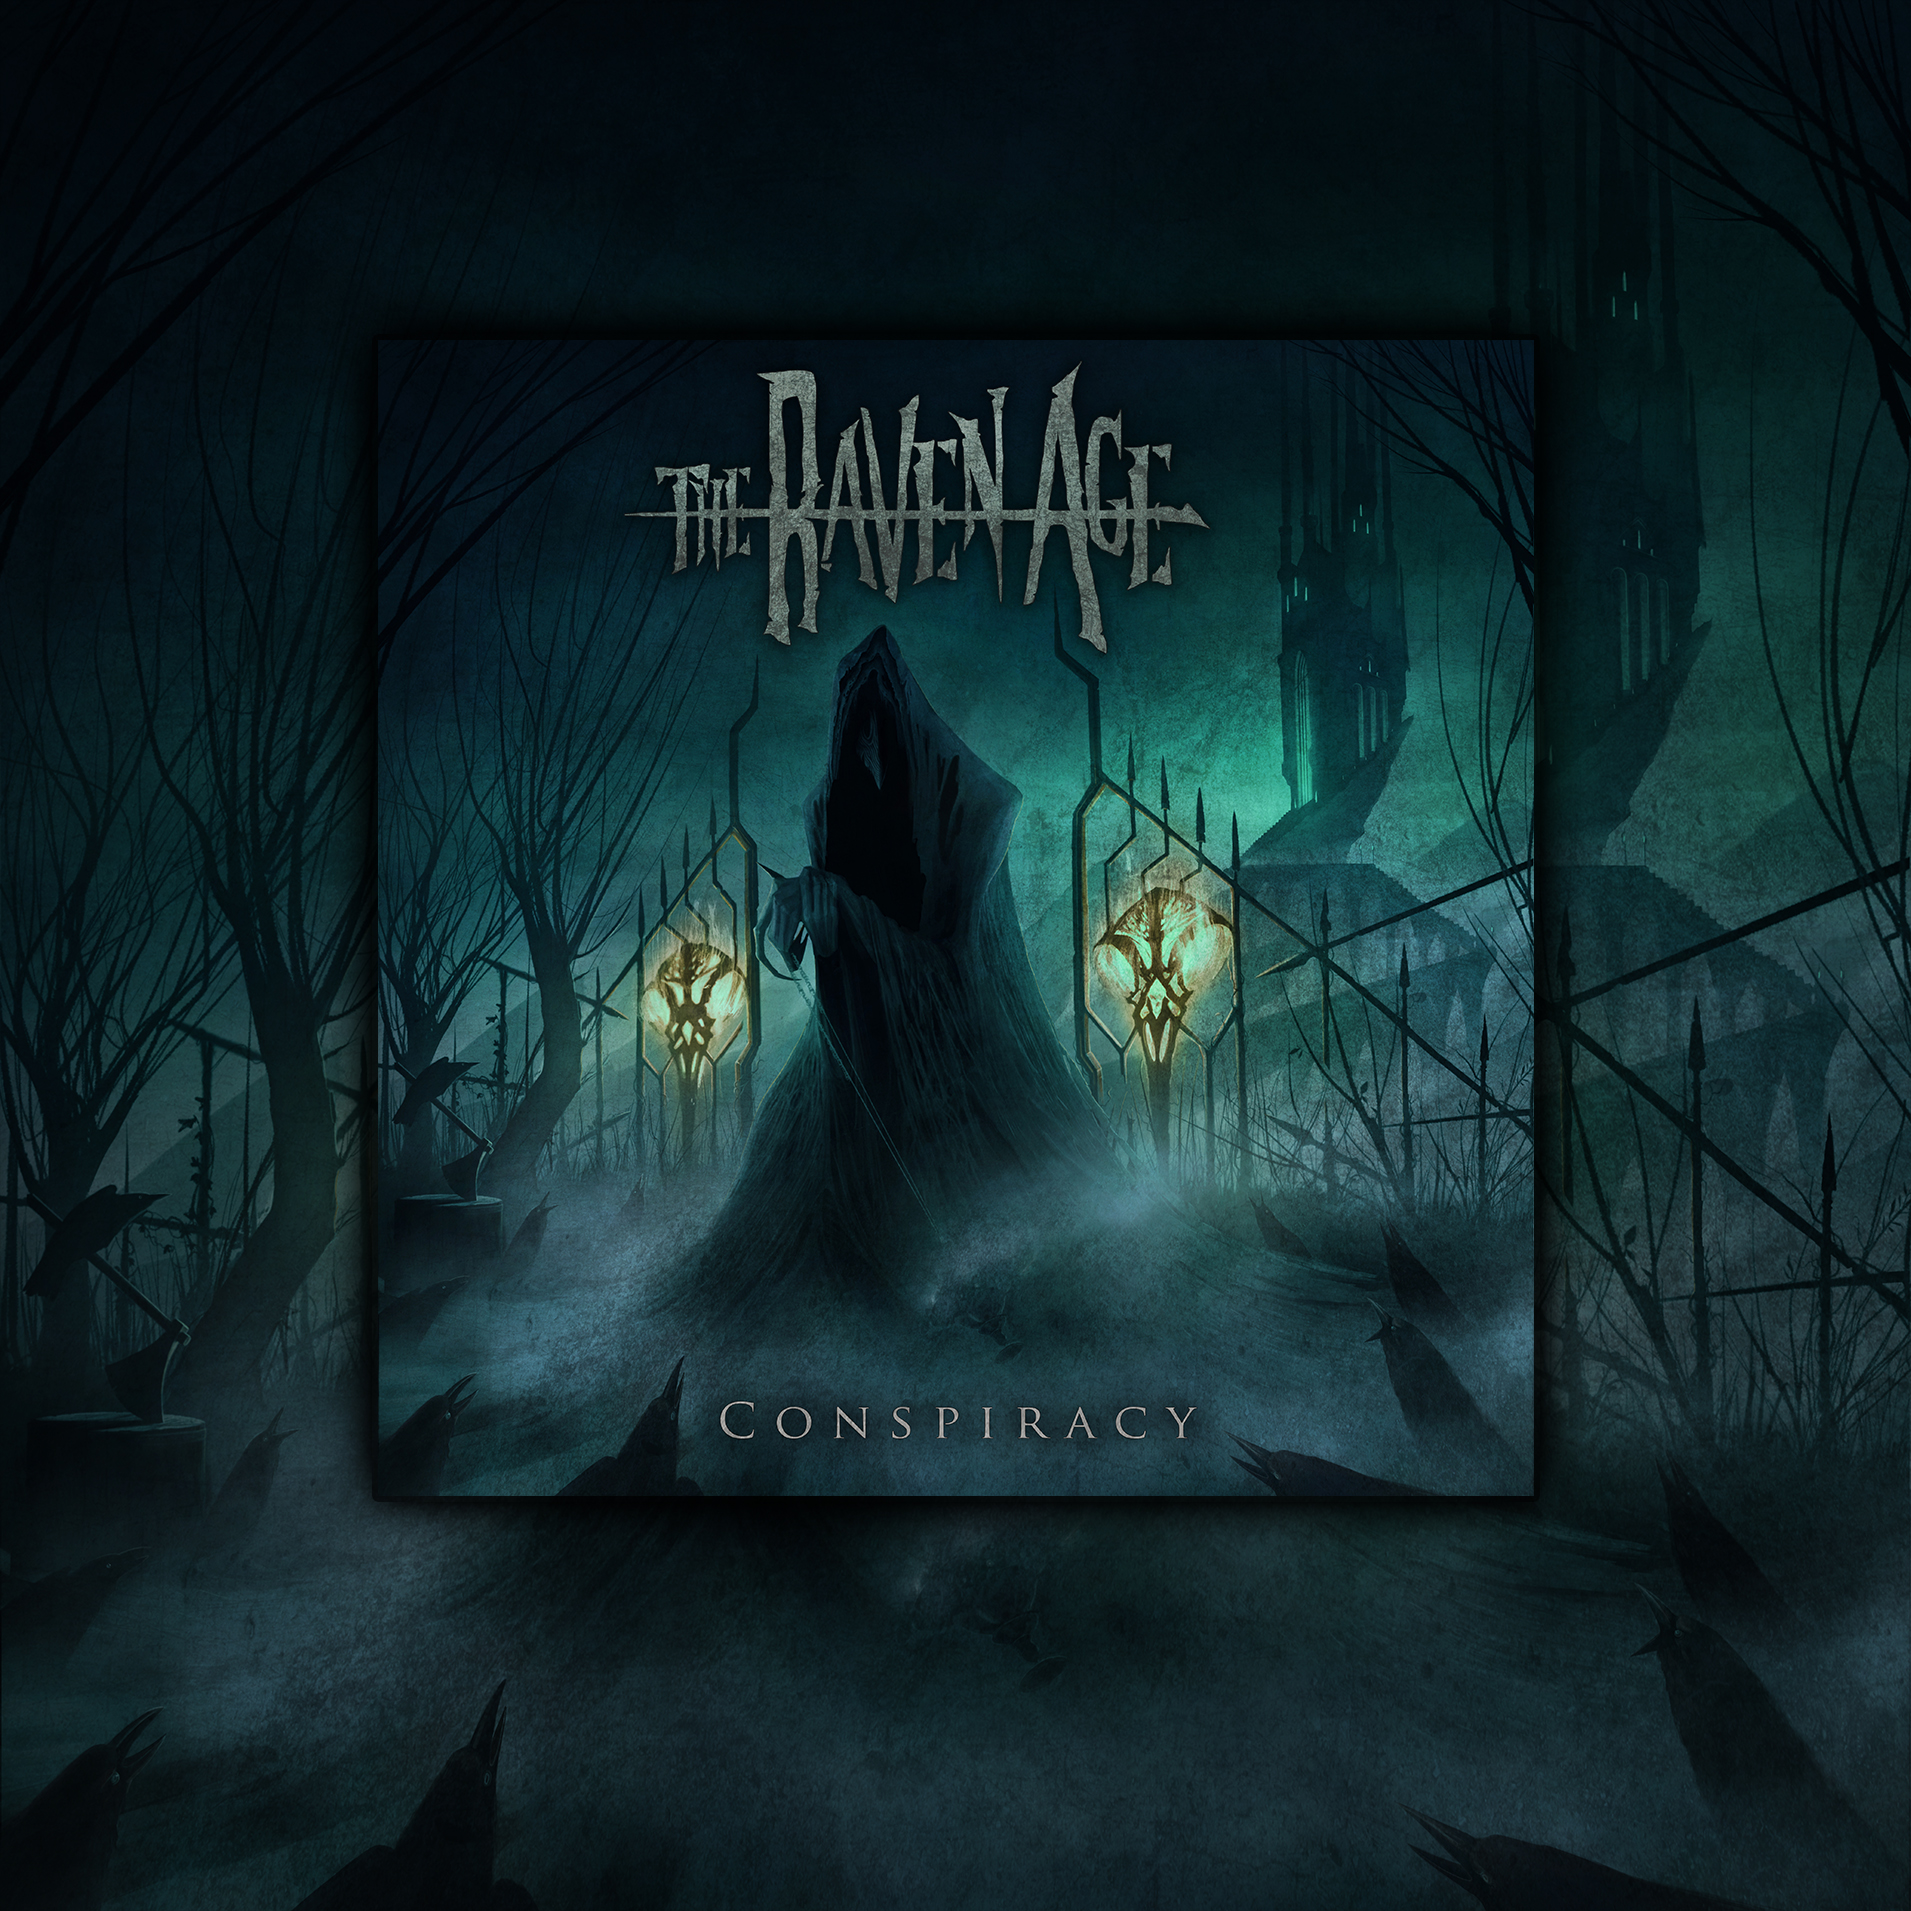 'Conspiracy' Ticket and Digipak CD Bundle - The Raven Age